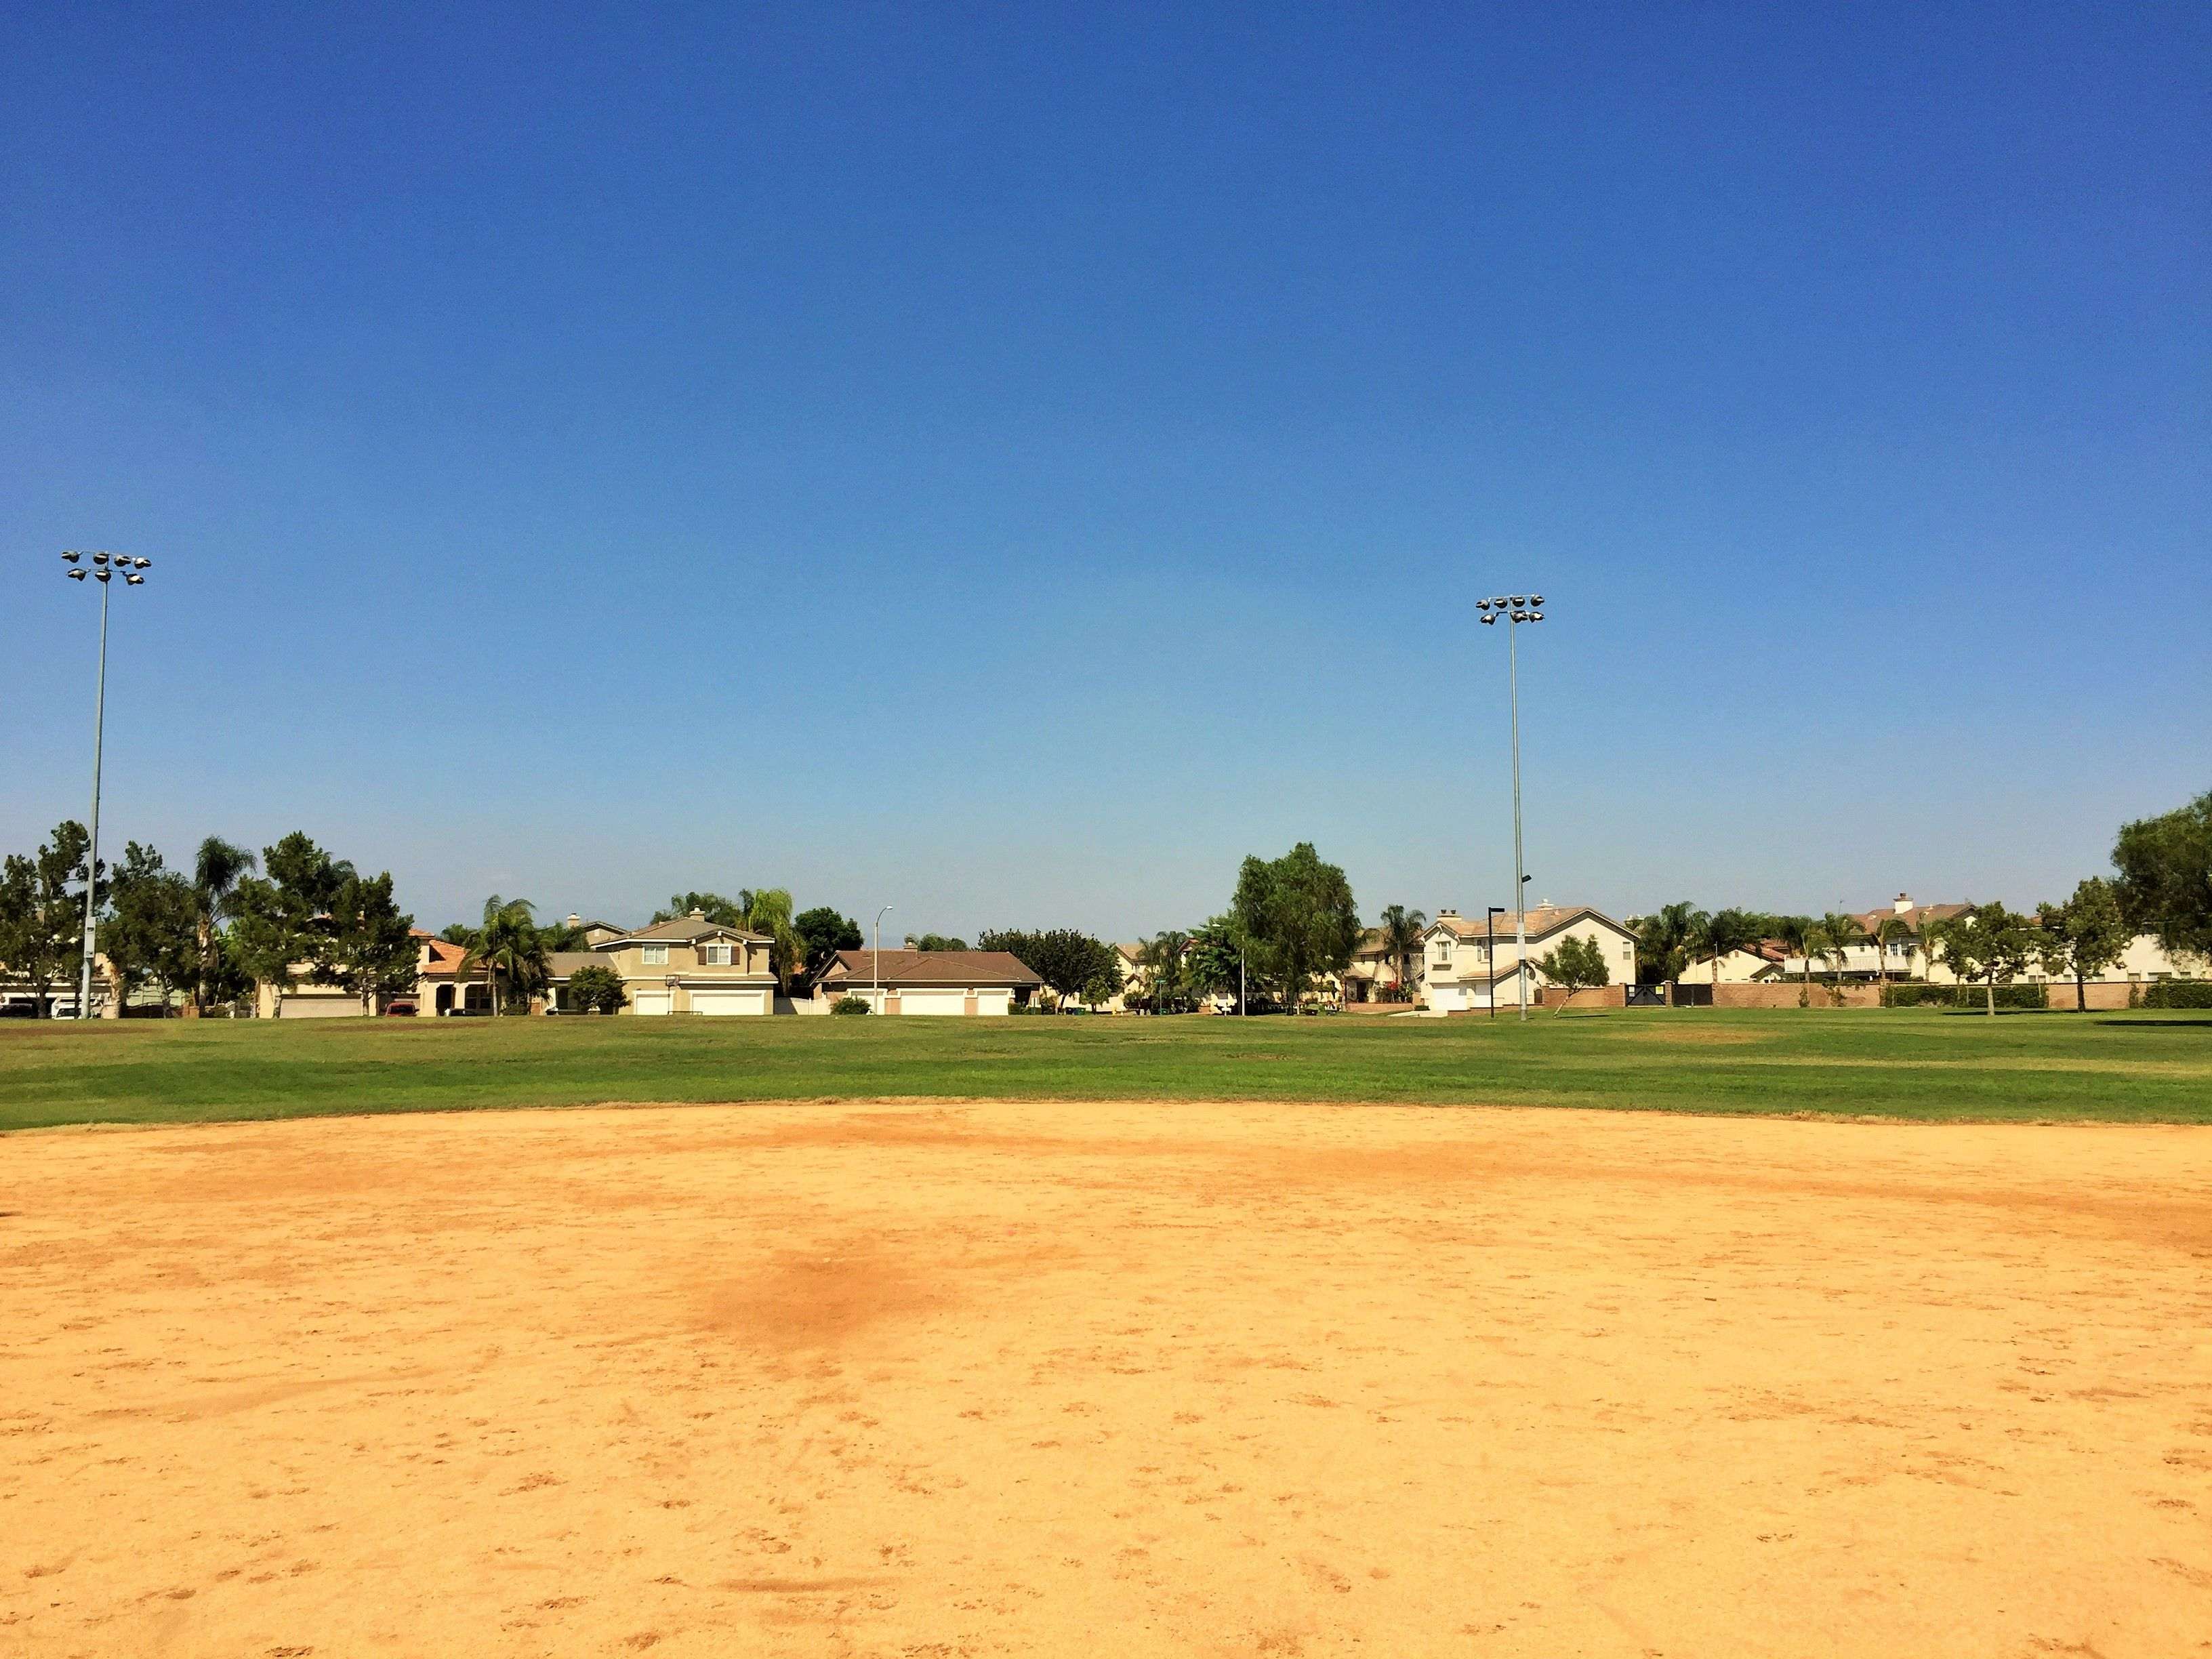 The baseball field located on the left side of Providence Ranch Park in Eastvale, California. http://youreastvalerealtor.com/eastvale-parks/